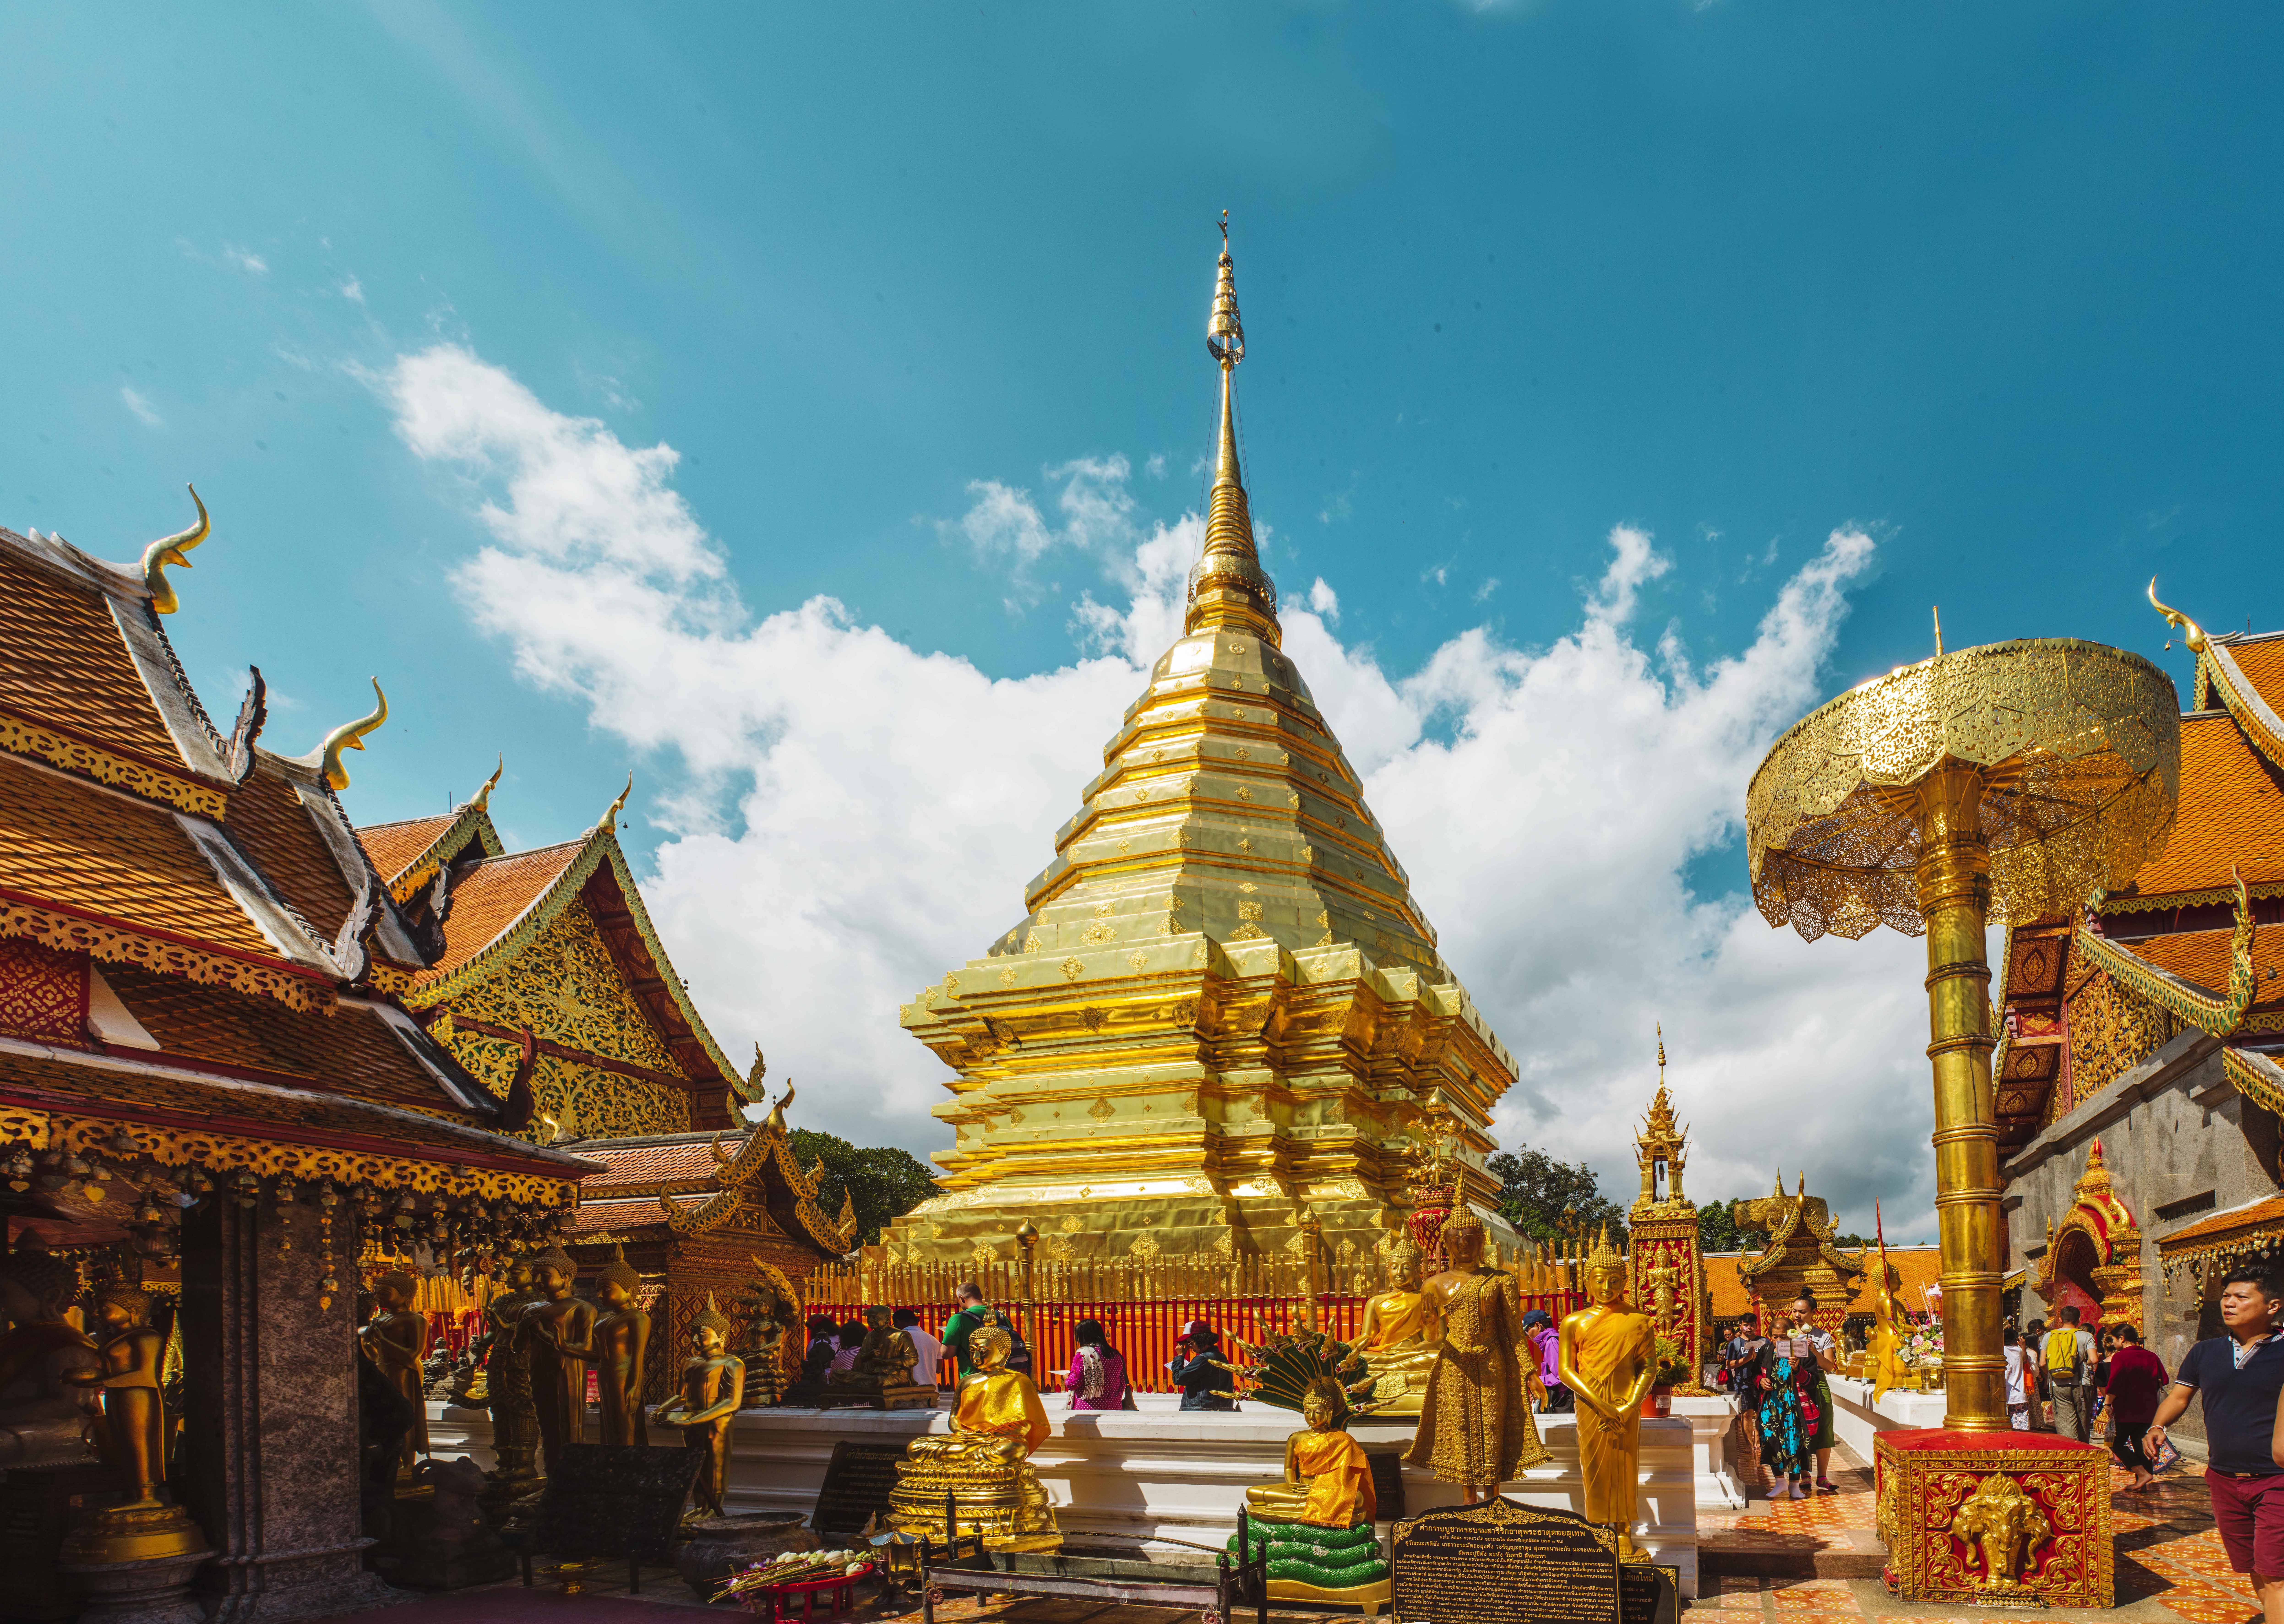 Chiang Mai's Wat Phra That Doi Suthep: The Complete Guide